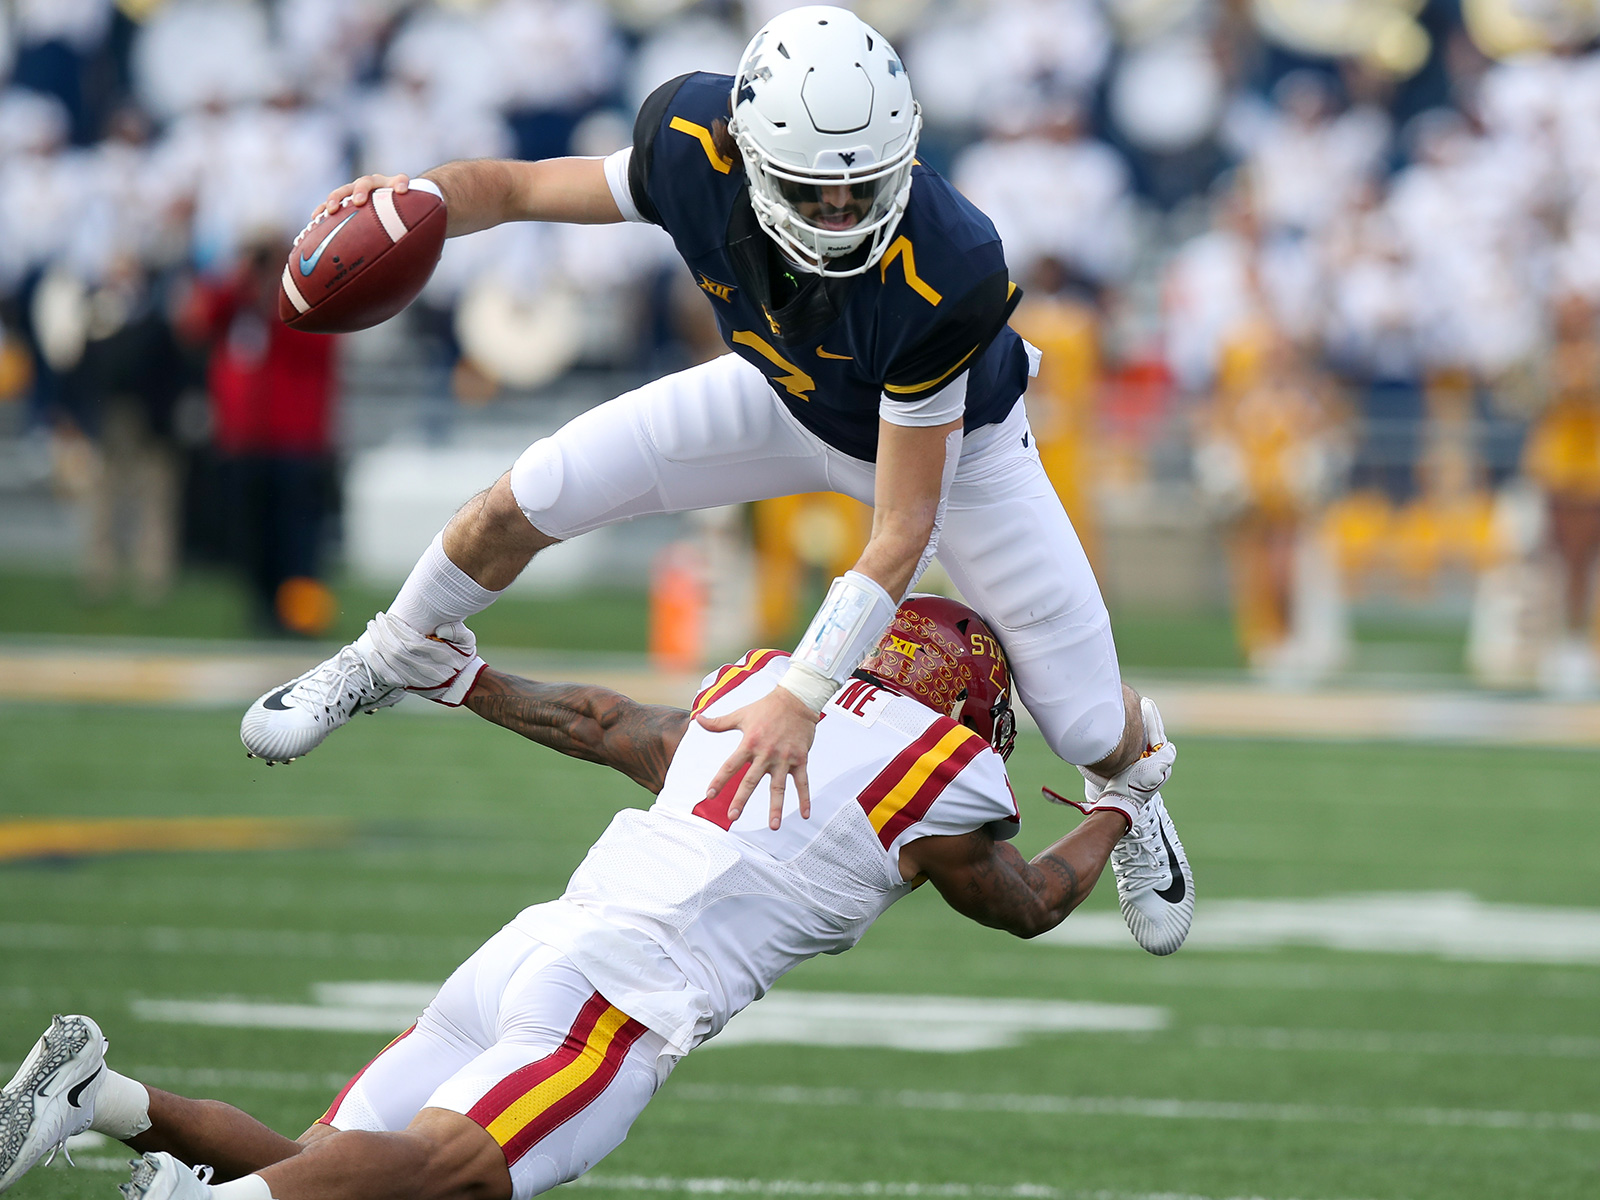 COLLEGE FOOTBALL: NOV 04 Iowa State at West Virginia